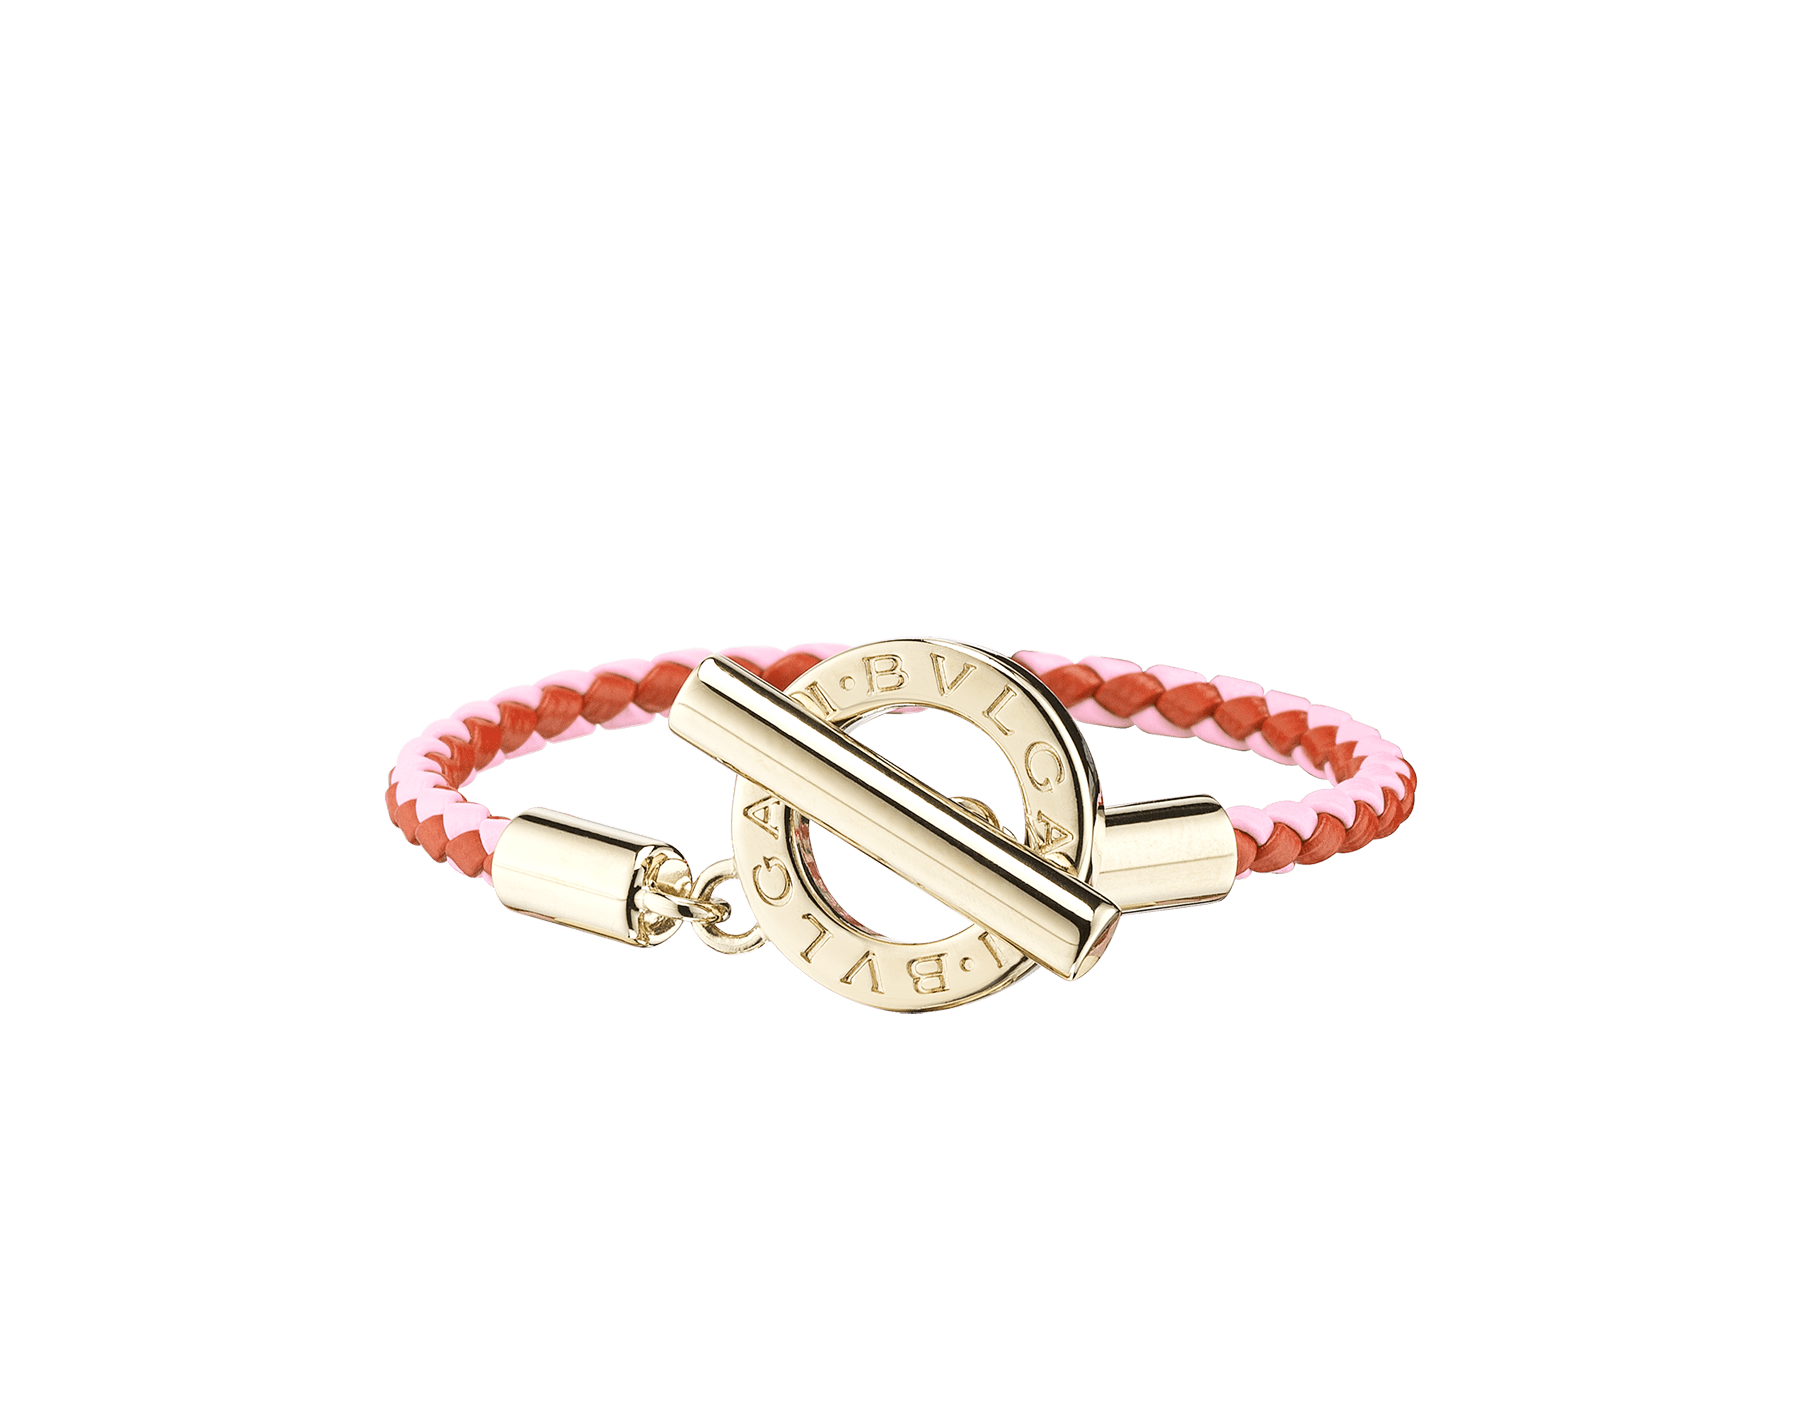 Bvlgari Bvlgari braid bracelet in silky coral and flash amethyst woven calf leather with an iconic iconic logo closure in light gold plated brass. 289299 image 1